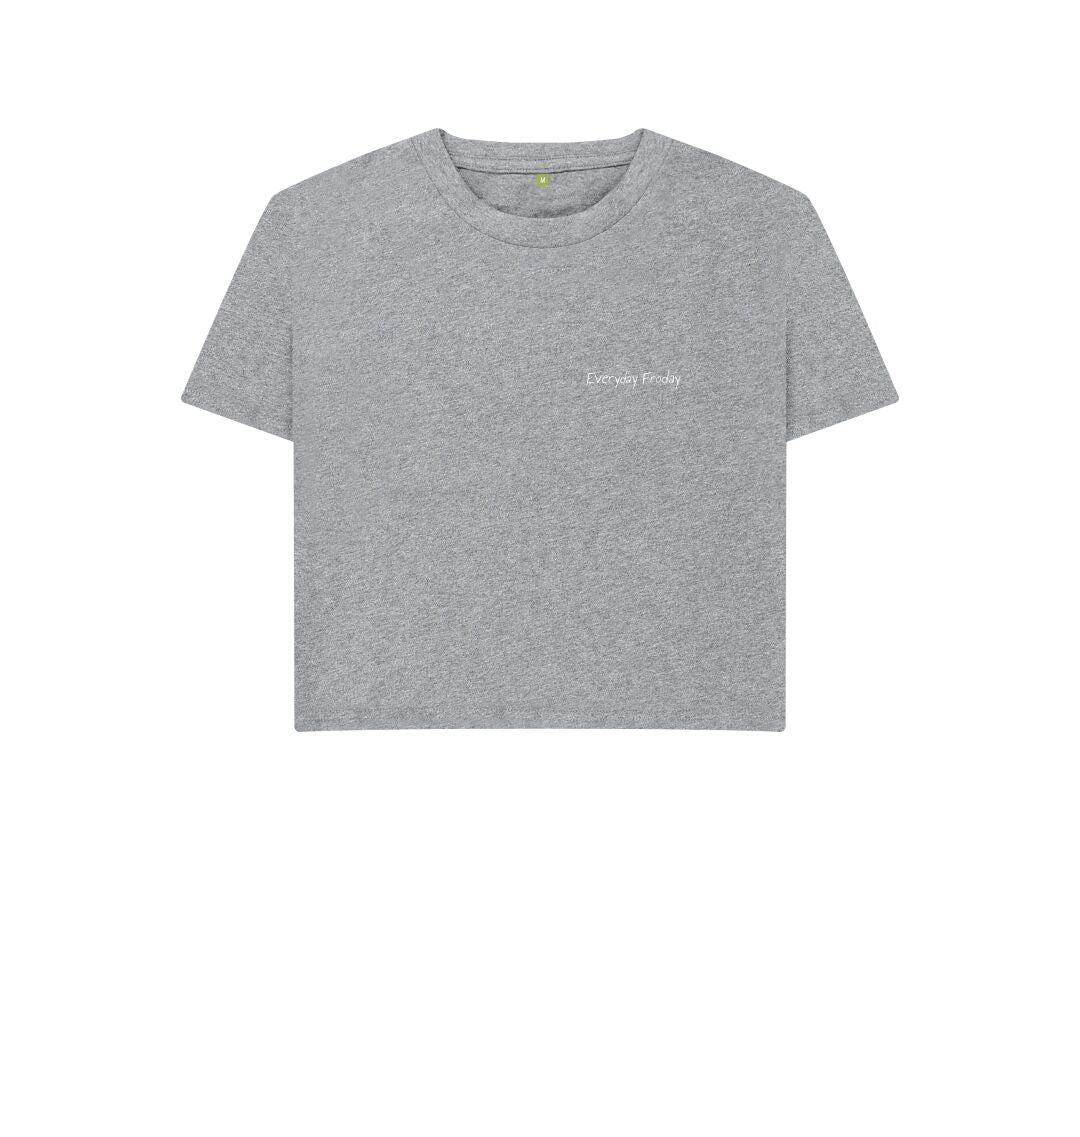 Athletic Grey Unisex Boxy | Everyday Froday Classic Small Logo